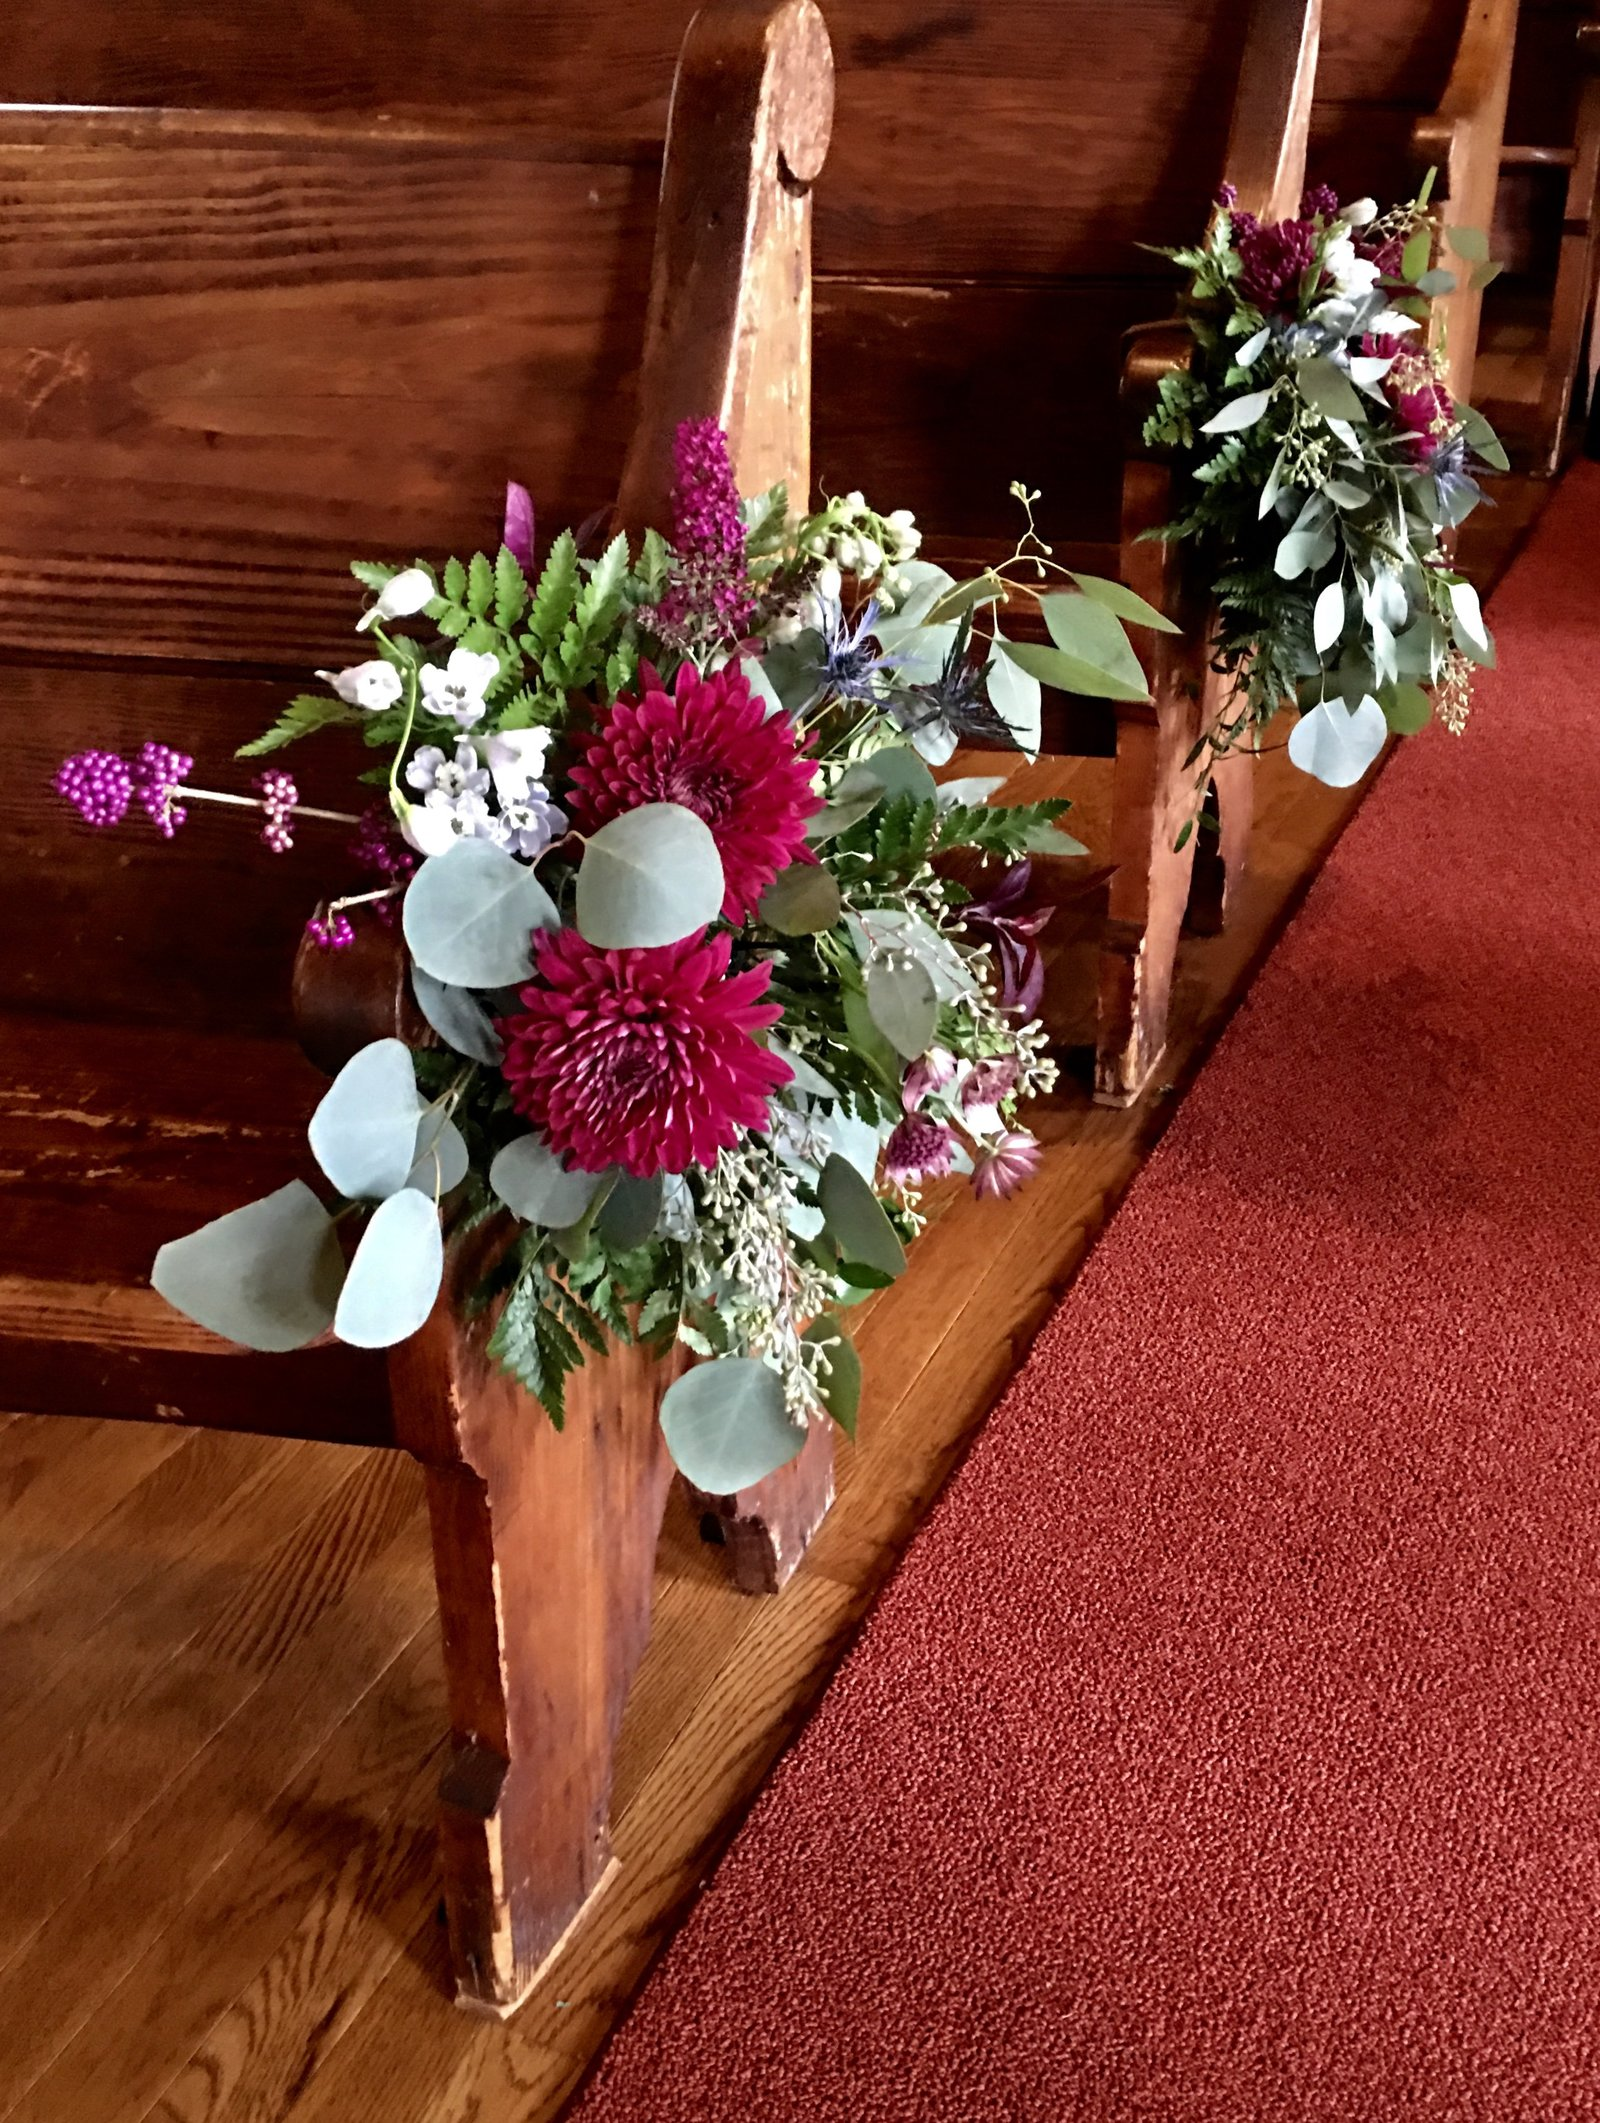 Rustic floral decor for church aisle pews